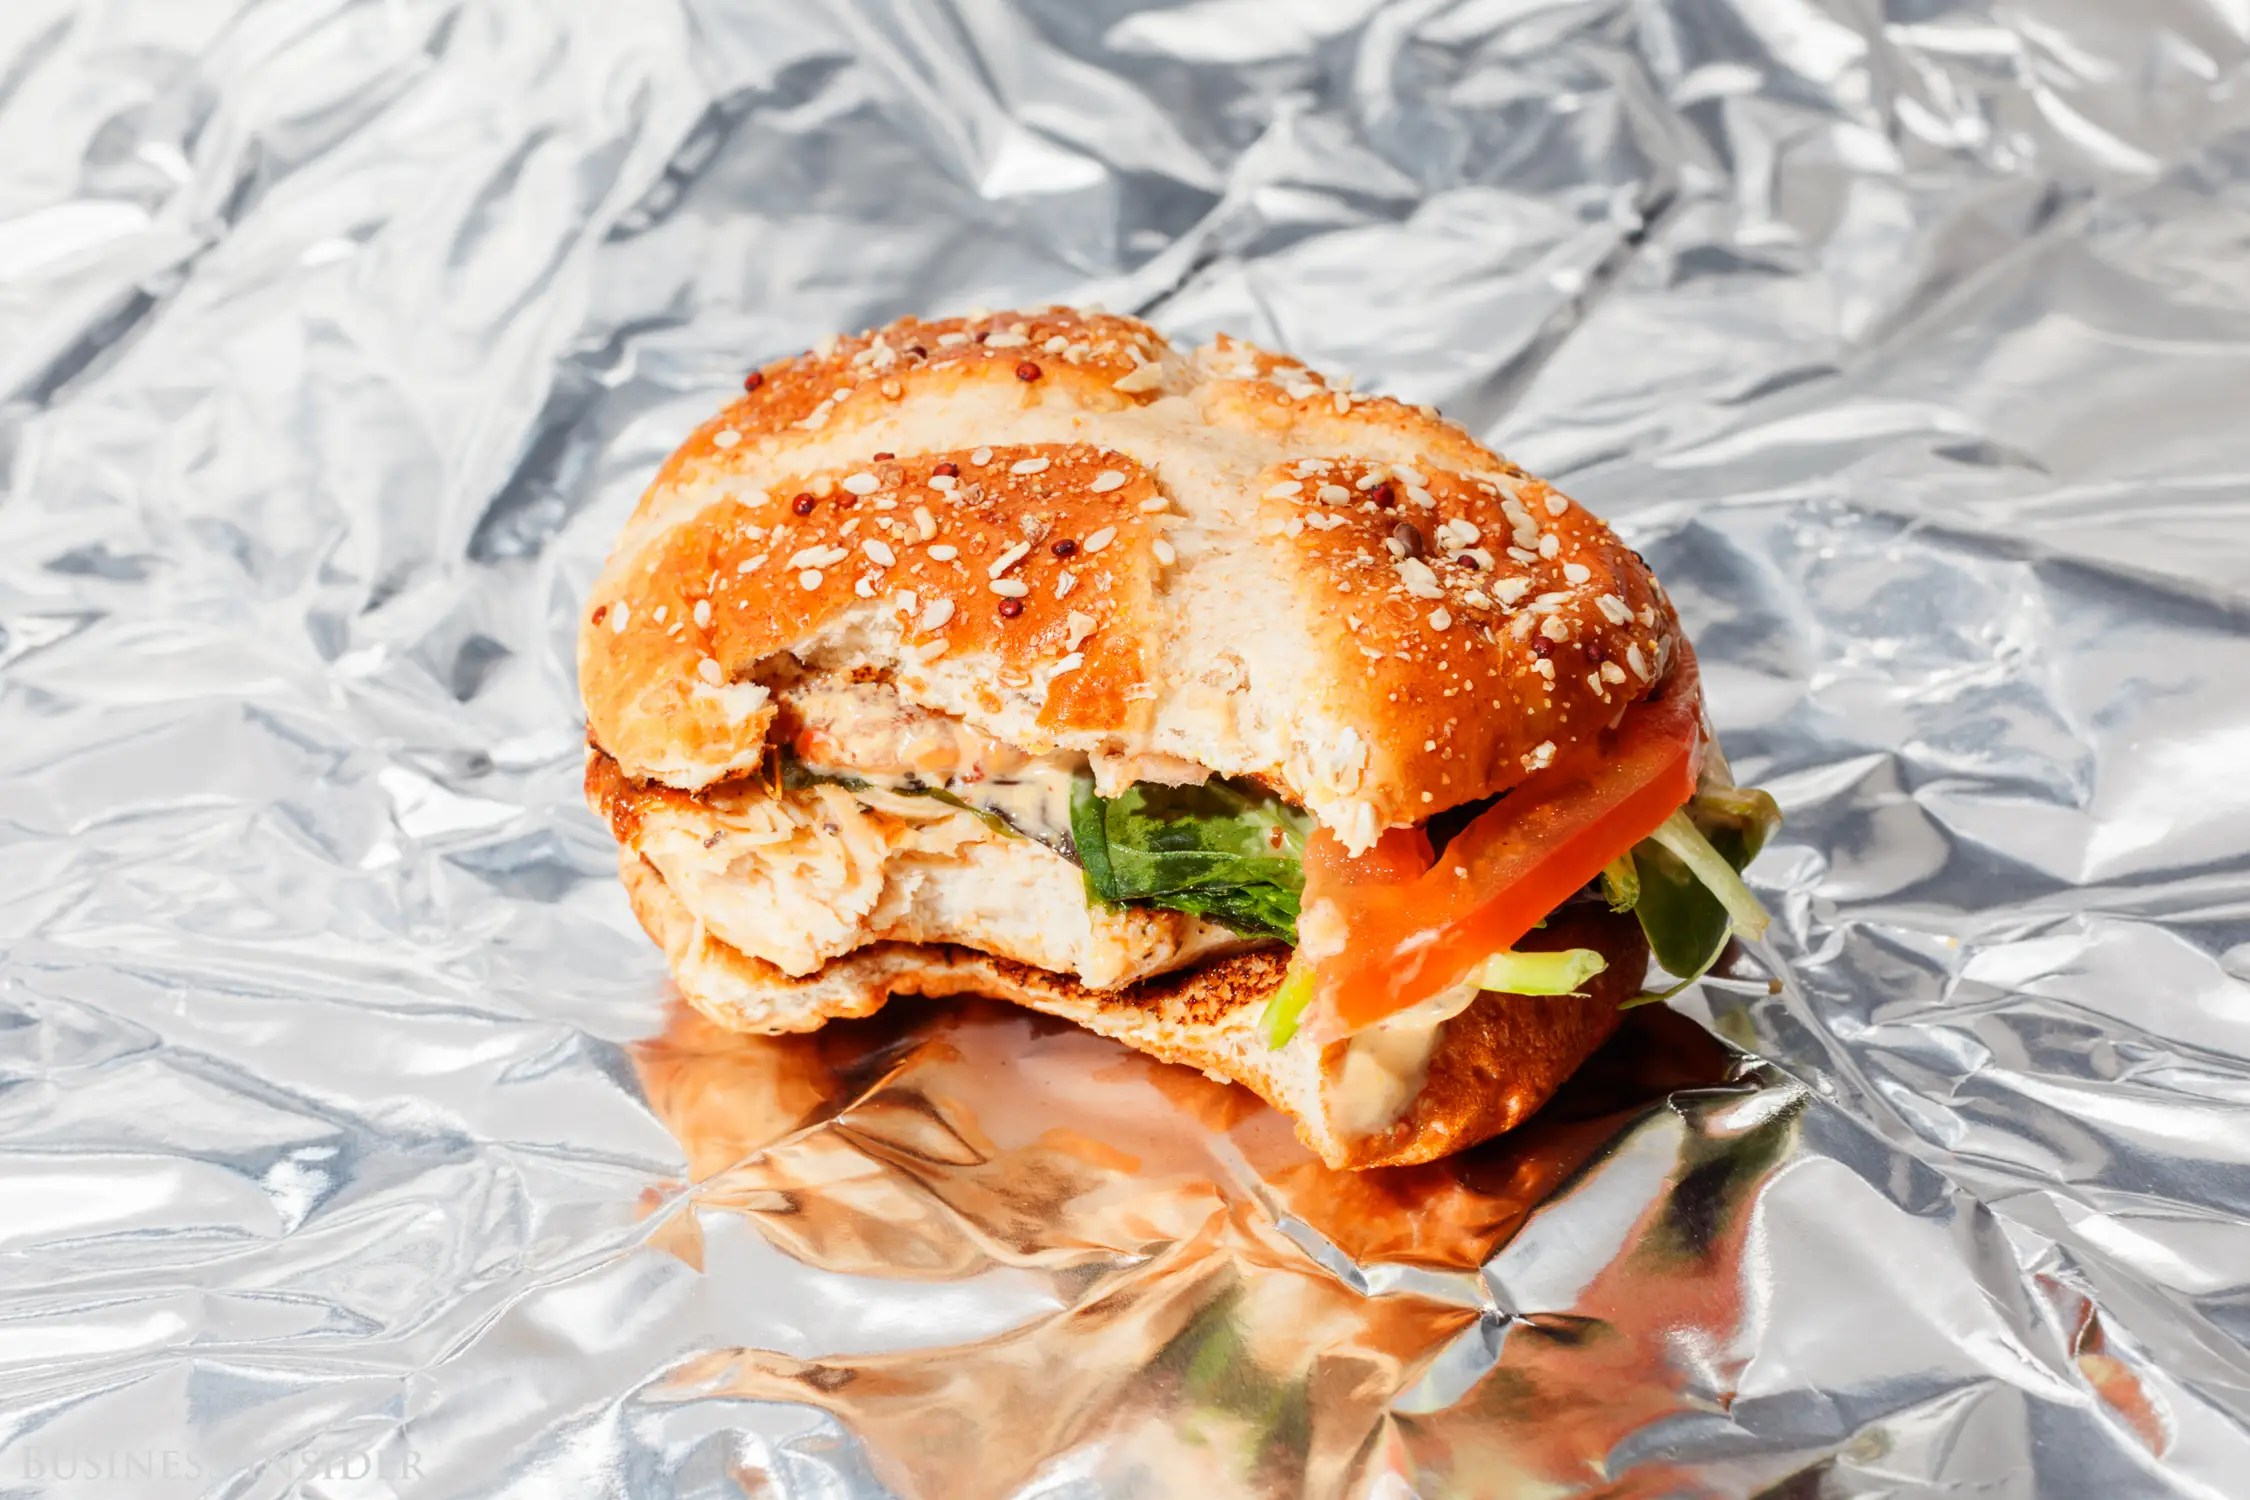 The Best Fast Food Grilled Chicken Sandwiches Ranked